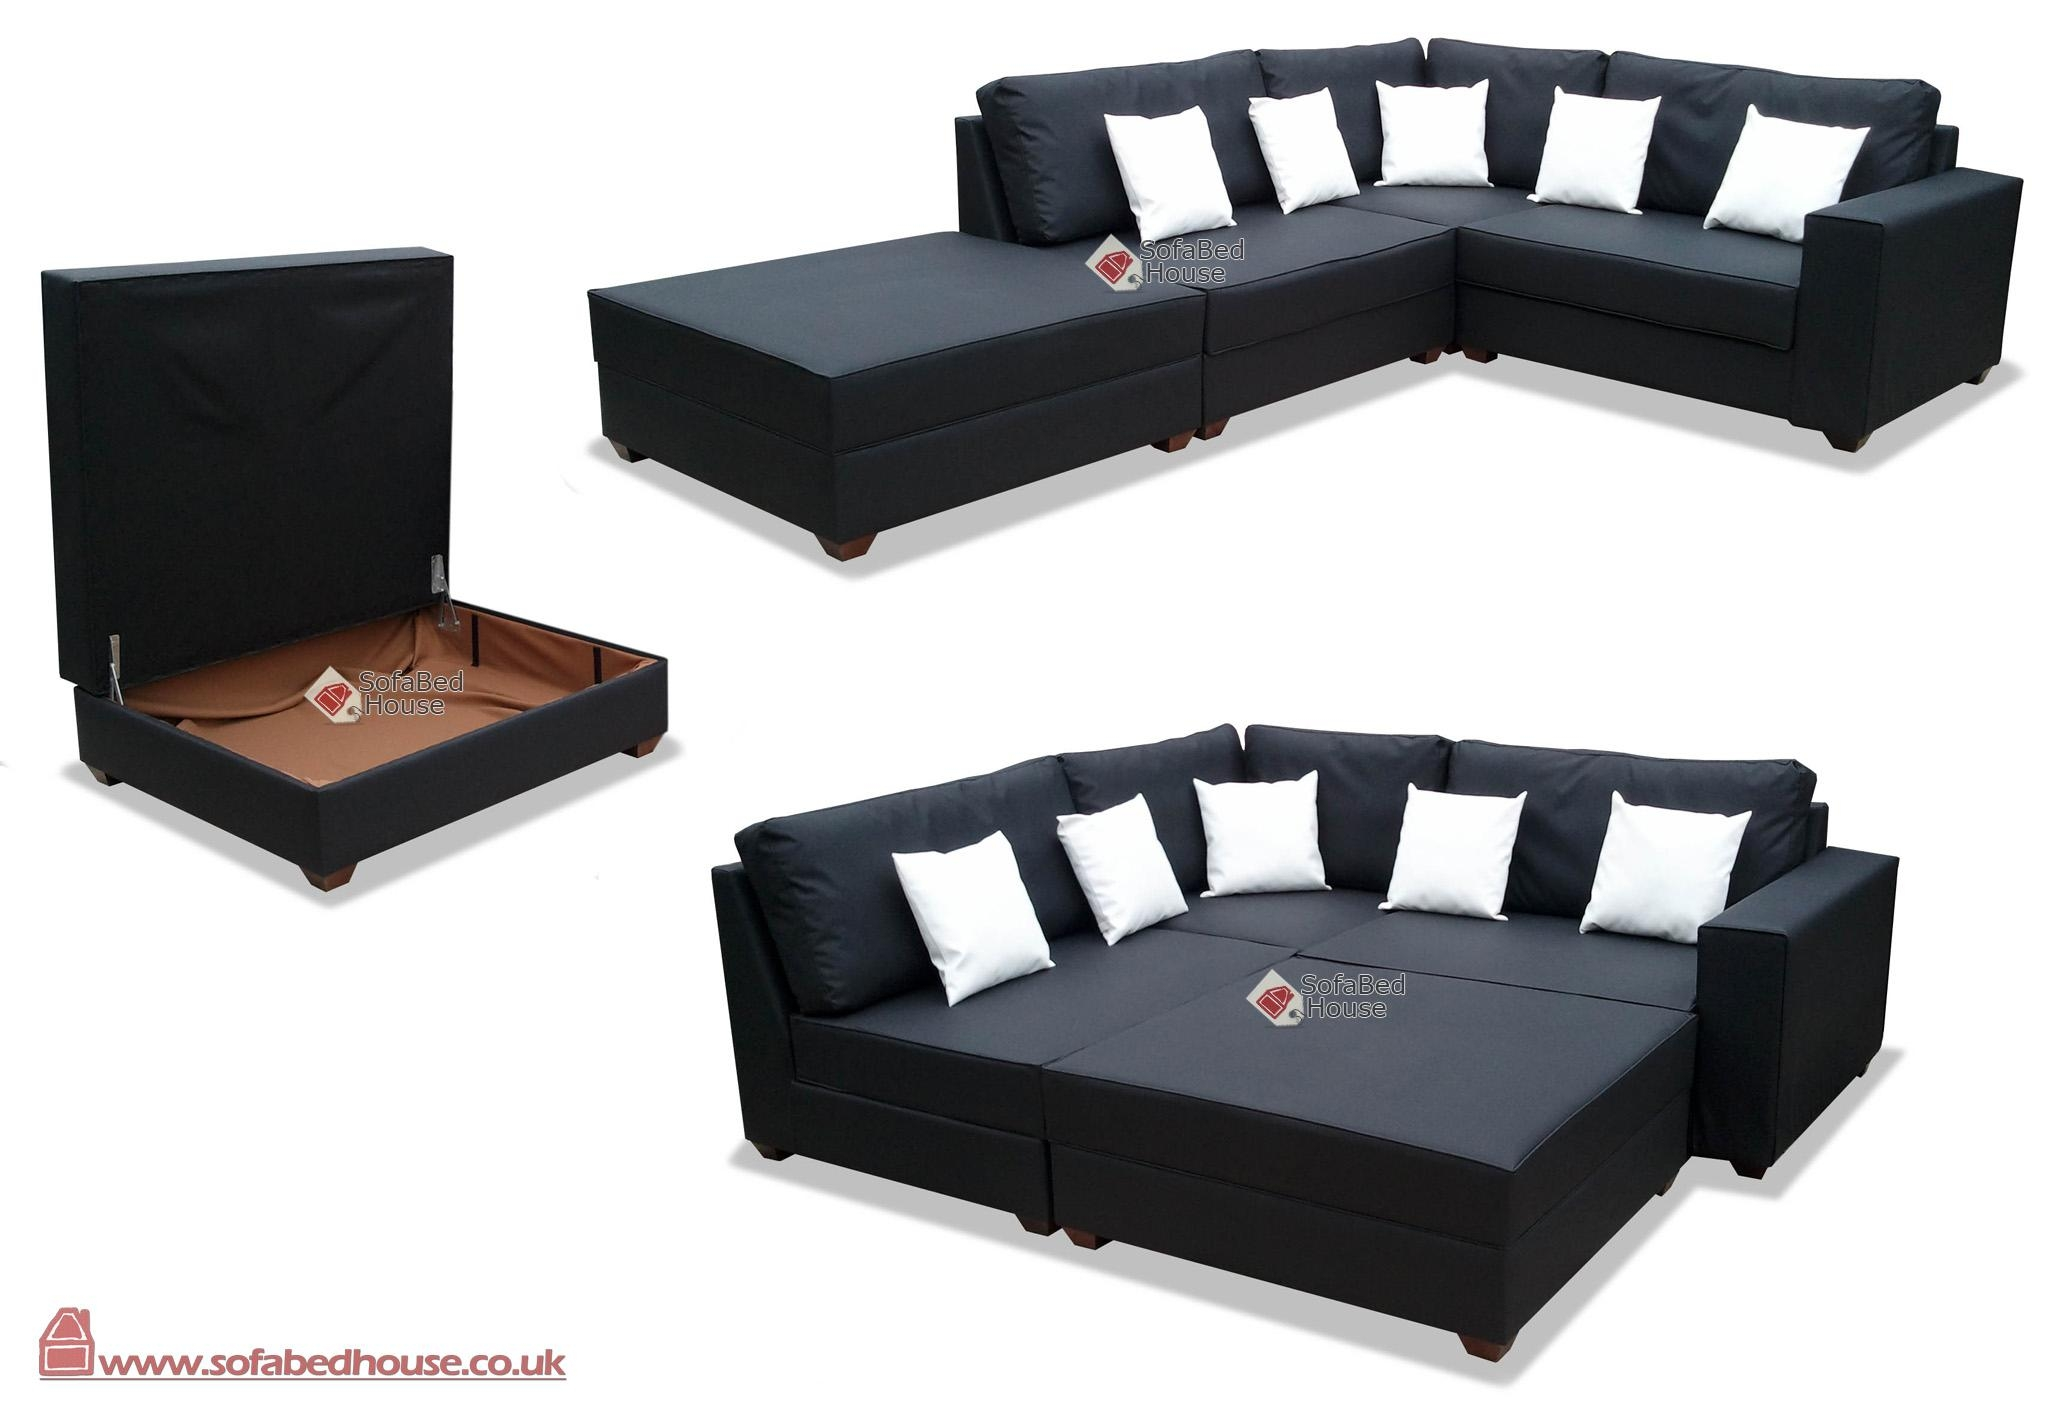 Cheap Corner Sofa Beds Uk | Crepeloversca For Cheap Corner Sofa Bed (View 2 of 20)